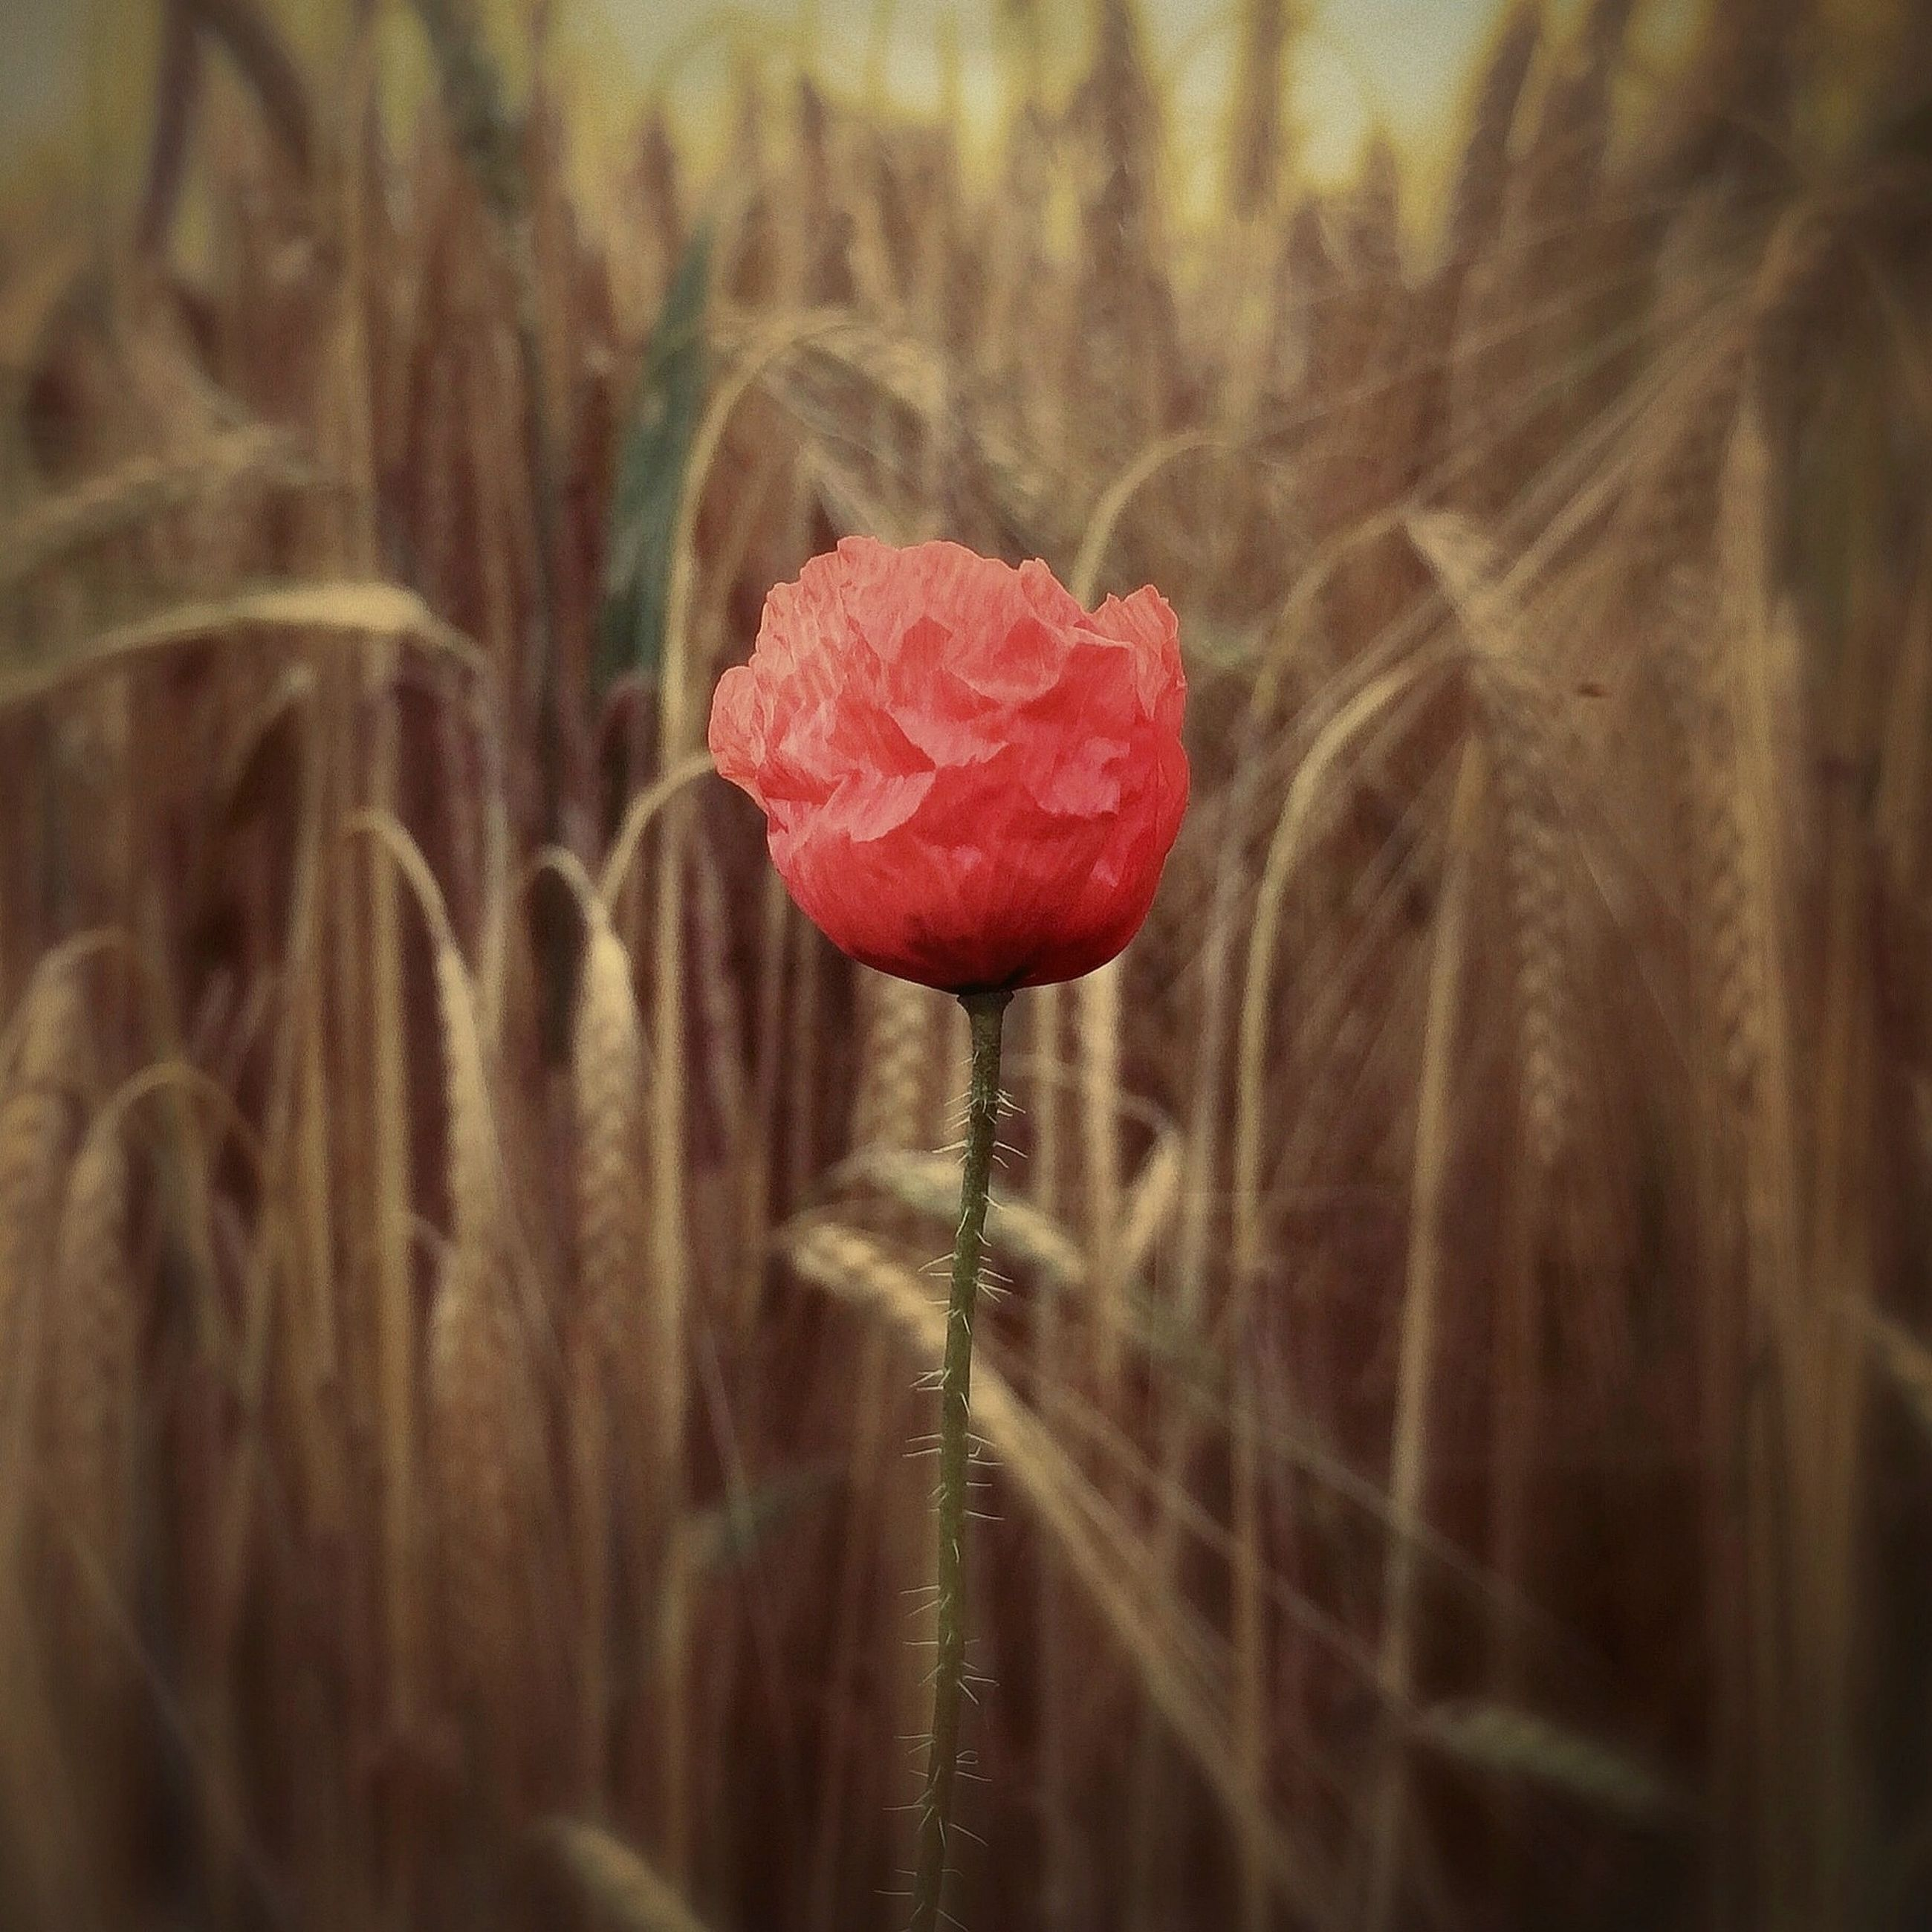 red, flower, focus on foreground, fragility, growth, freshness, close-up, plant, nature, beauty in nature, stem, selective focus, flower head, single flower, petal, field, outdoors, day, season, poppy